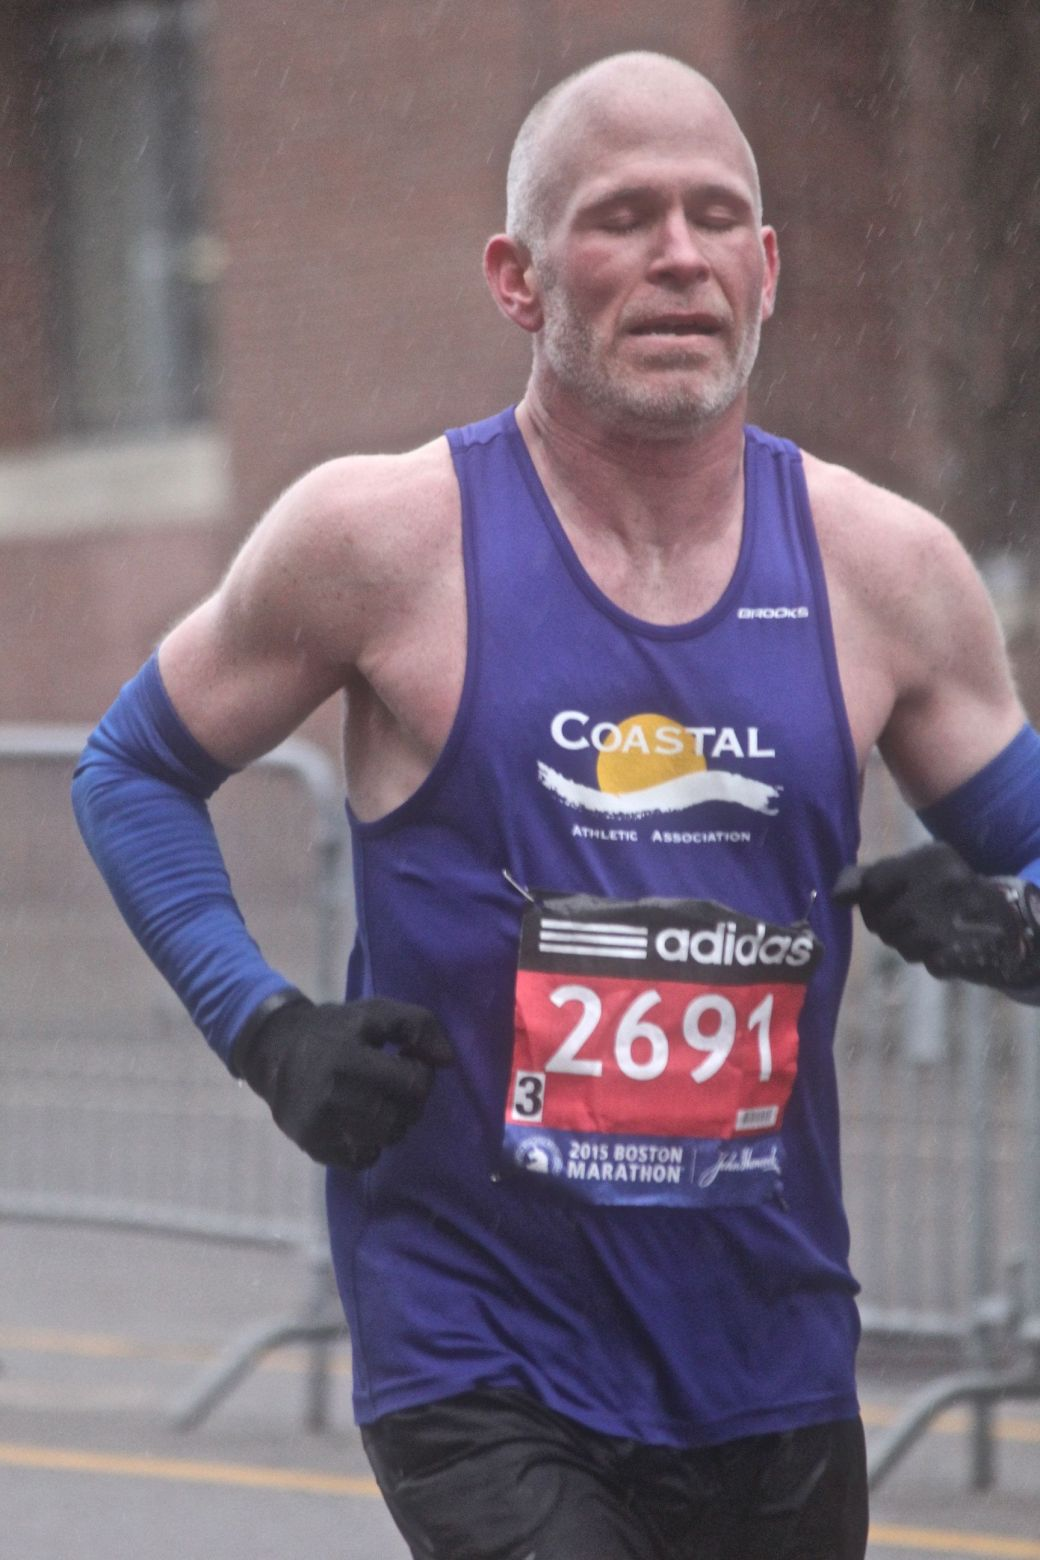 boston marathon april 20 2015 racer number 2691